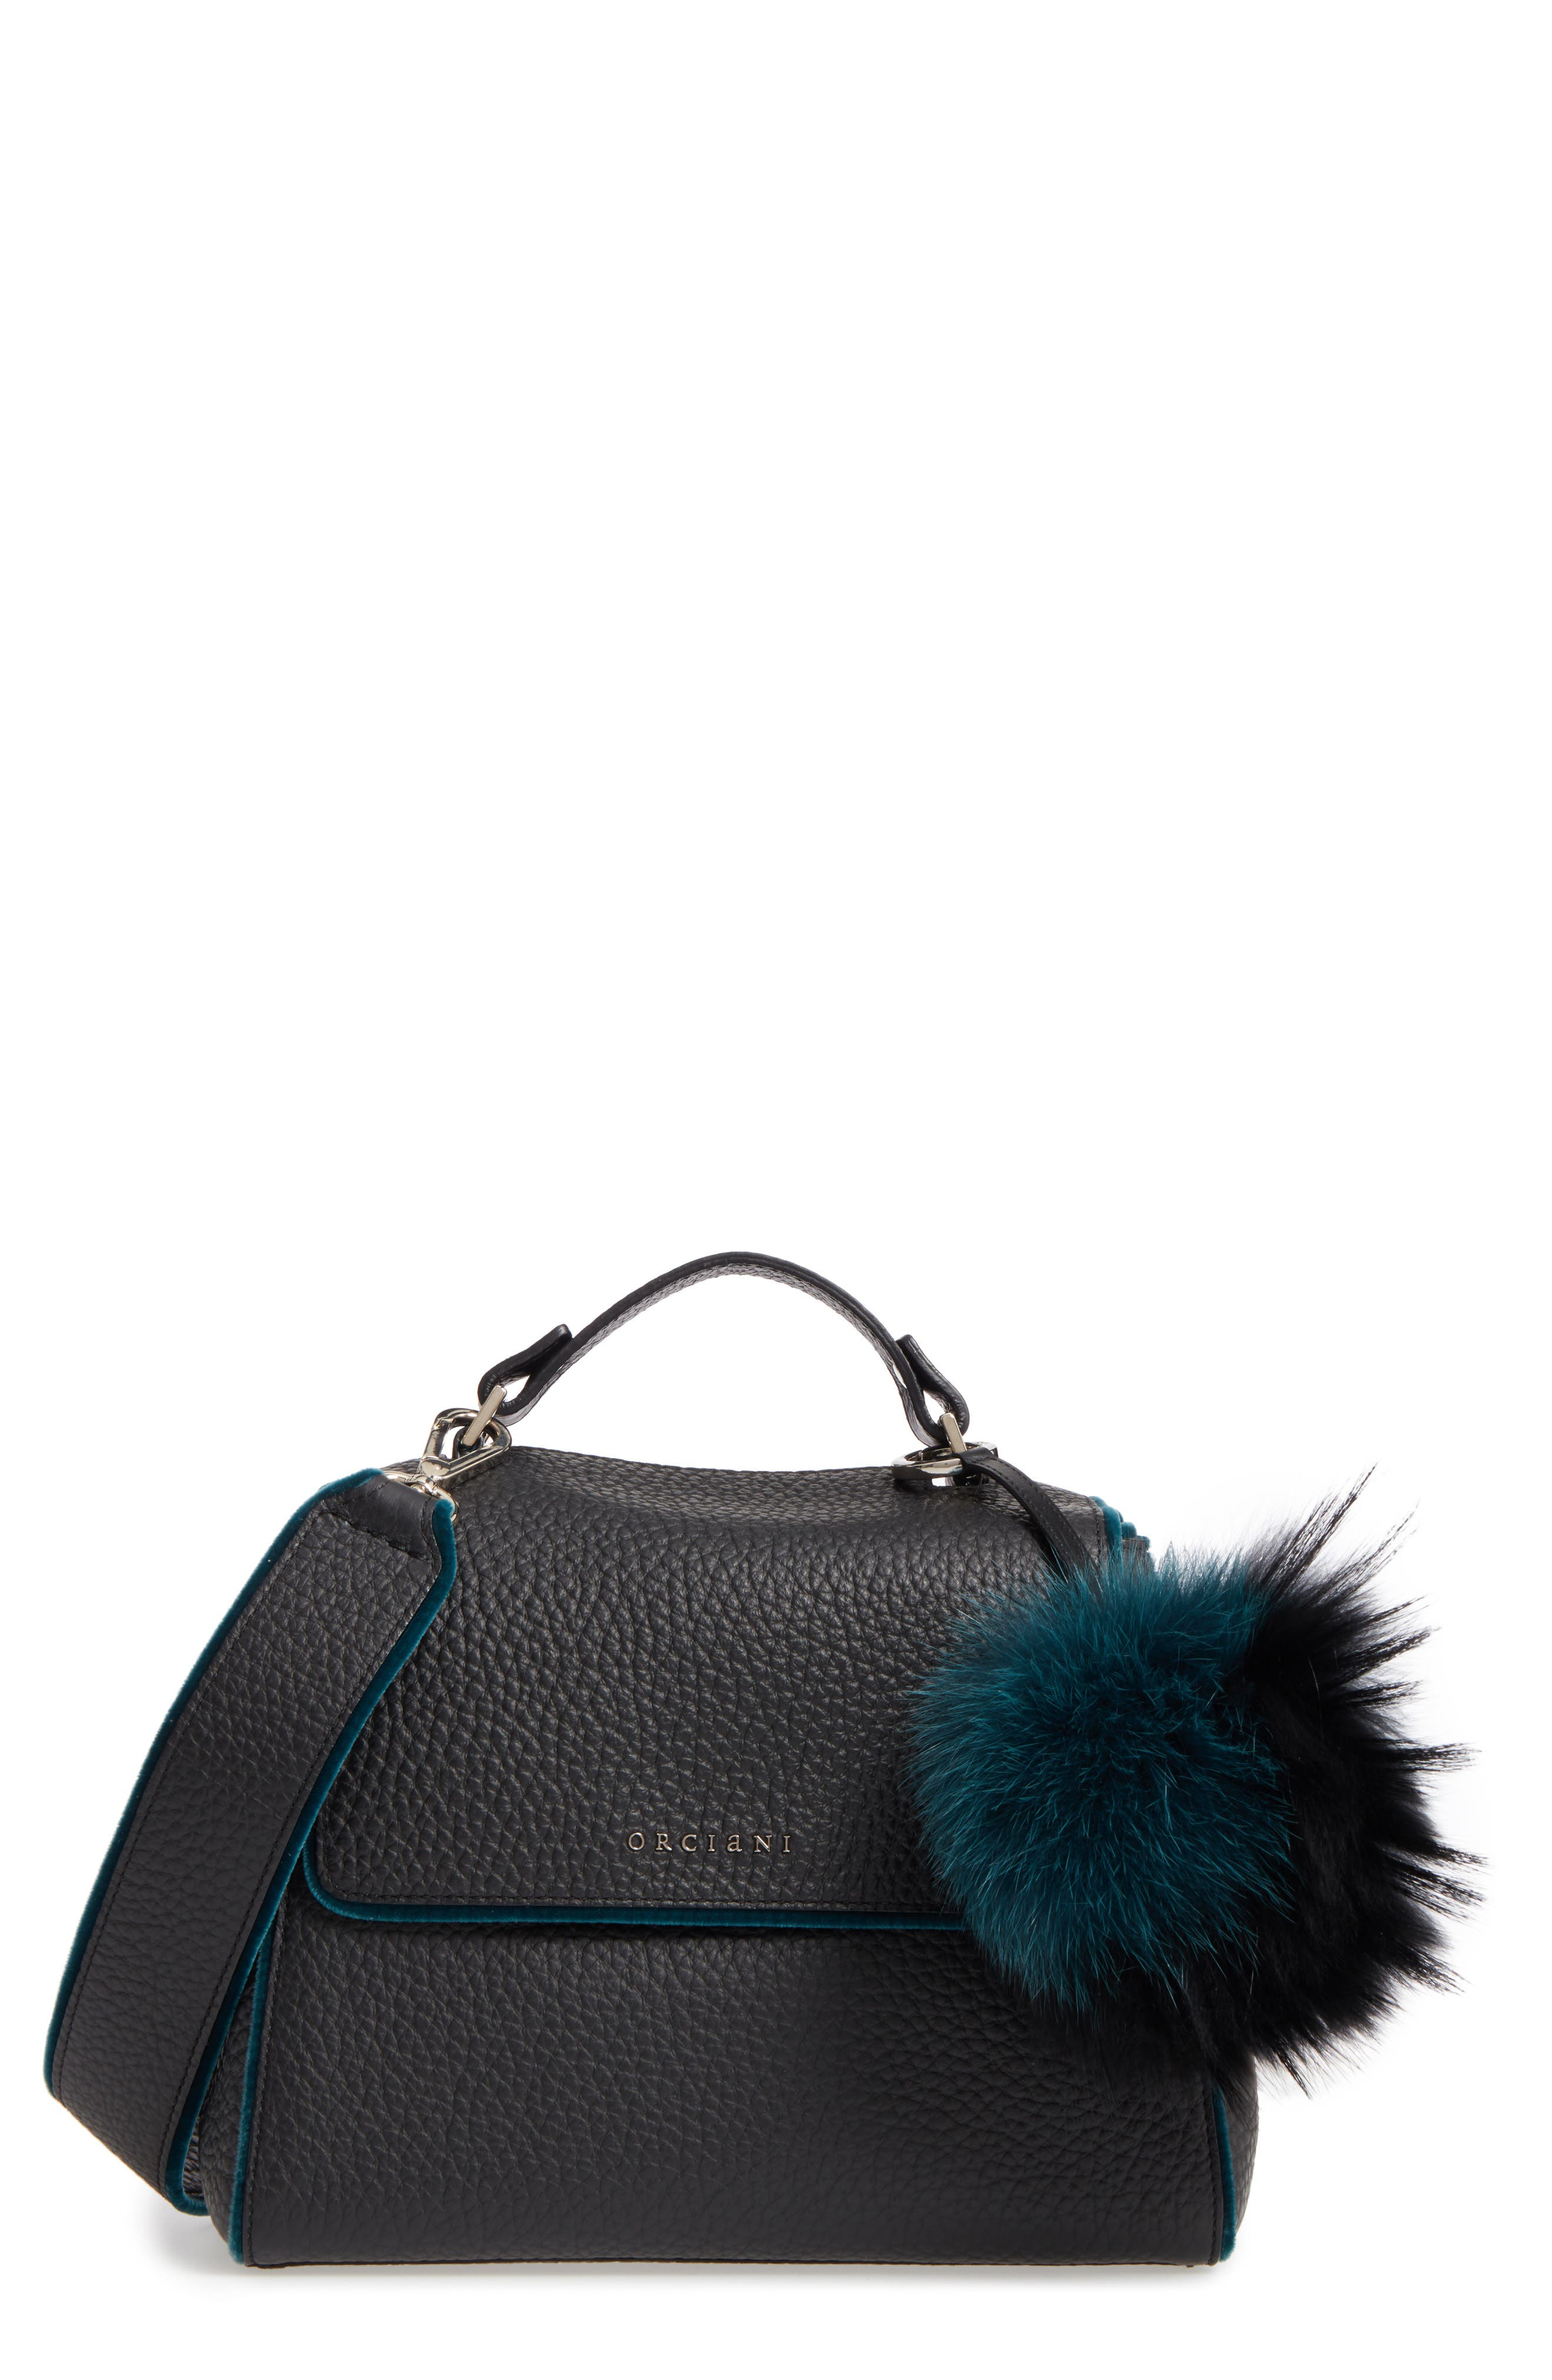 Alternate Image 1 Selected - Orciani Small Sveva Soft Leather Top Handle Satchel with Genuine Fur Bag Charm